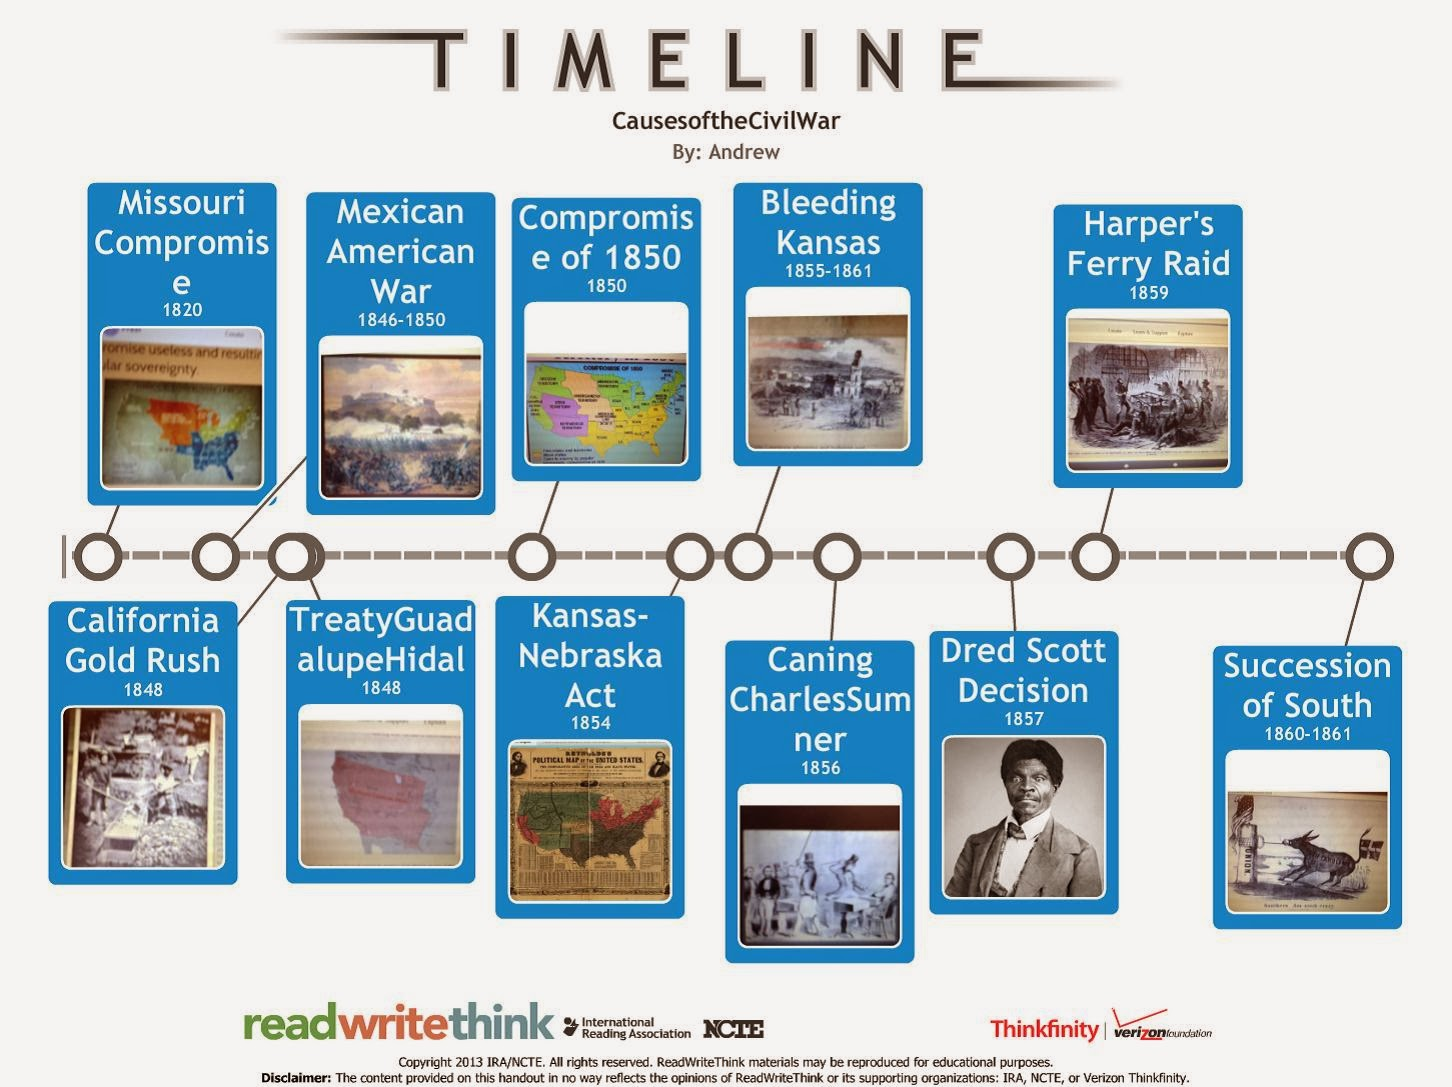 my history blog causes of the civil war research project we also viewed other groups projects and used the information to compile a timeline of the events that led up to the civil war the timeline is below